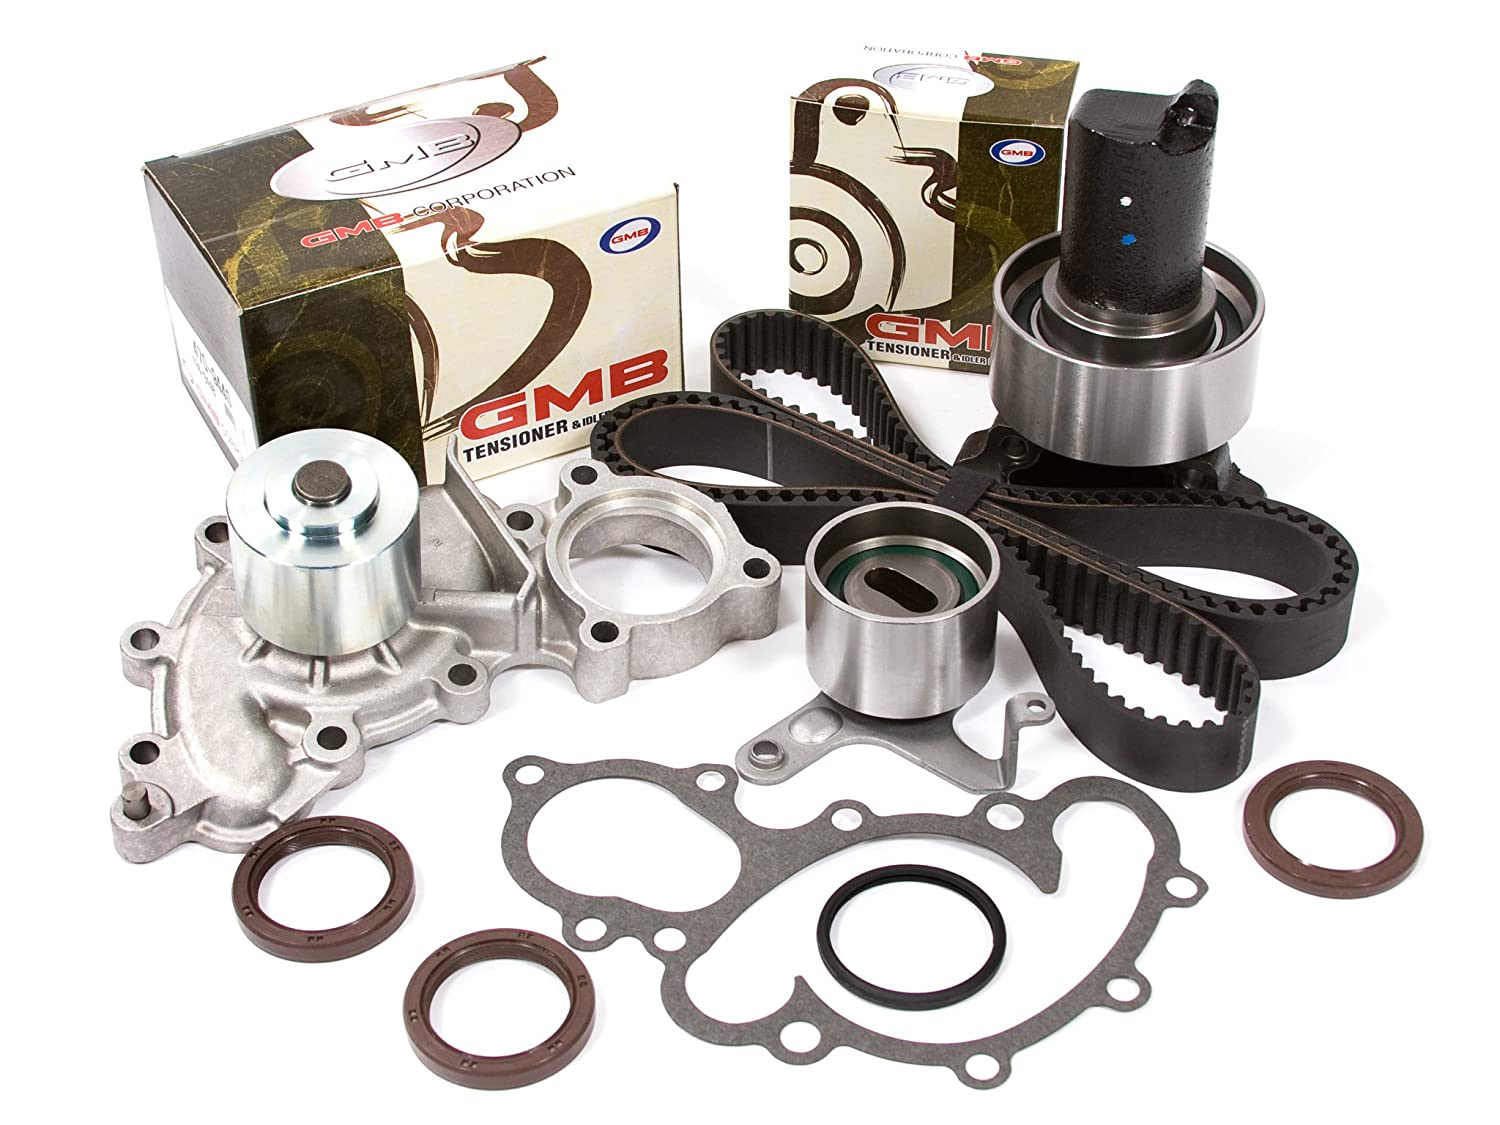 Evergreen TBK154WPT2 Fits 88-92 Toyota 4Runner Pickup 3.0 SOHC 3VZE Timing Belt Kit Water Pump without outlet pipe